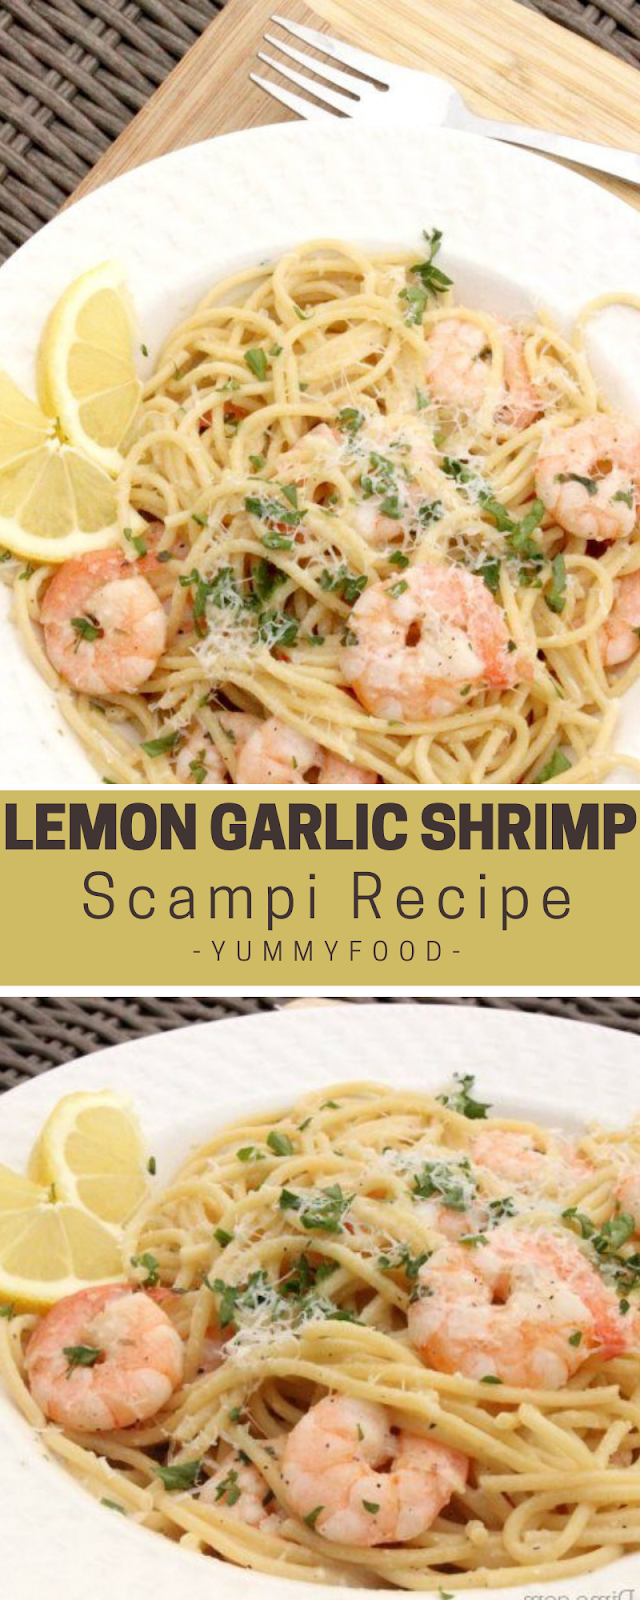 Lеmоn Garlic Shrimp Sсаmрі Rесіре